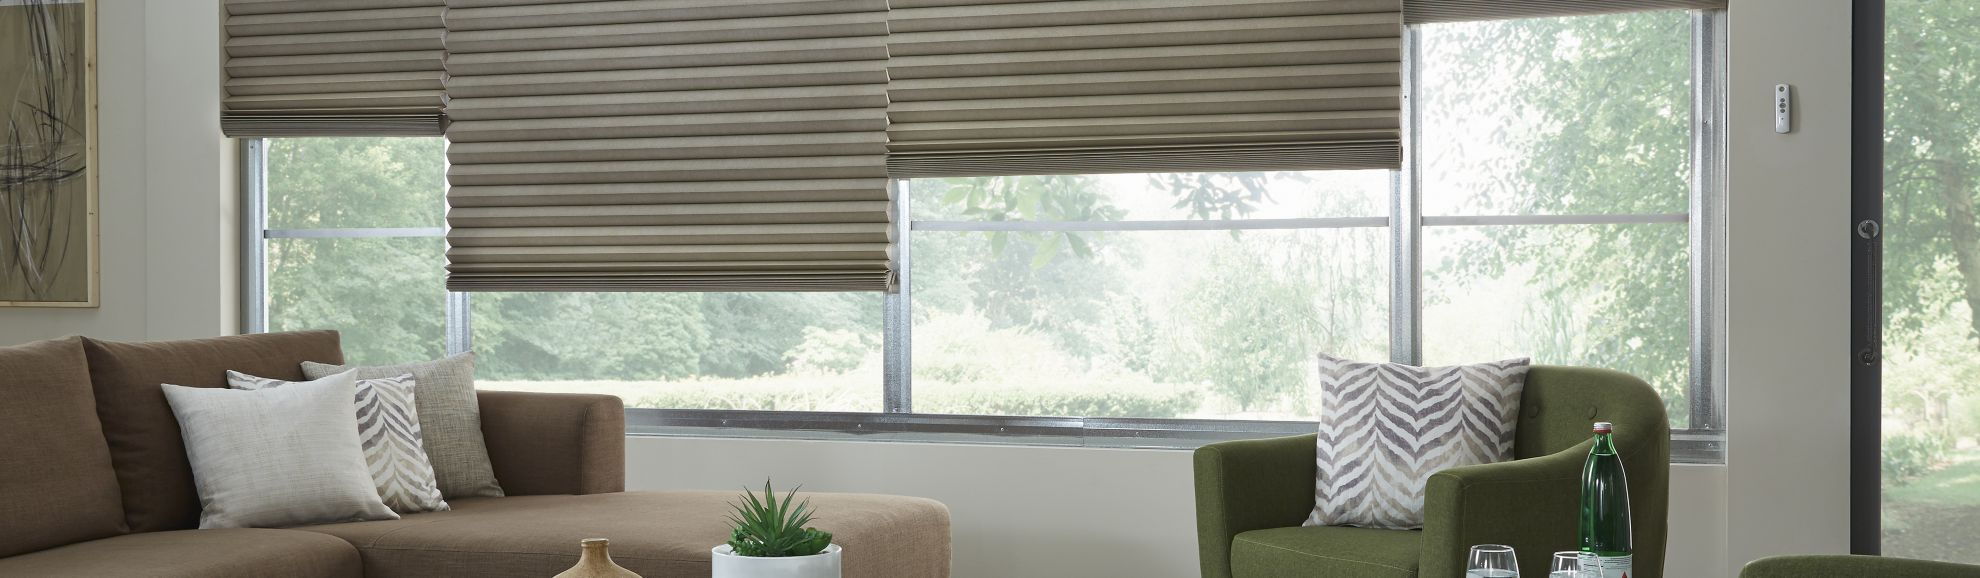 "Cellular Shades - Riten Sandpiper - 4"" Cell - Living Room"